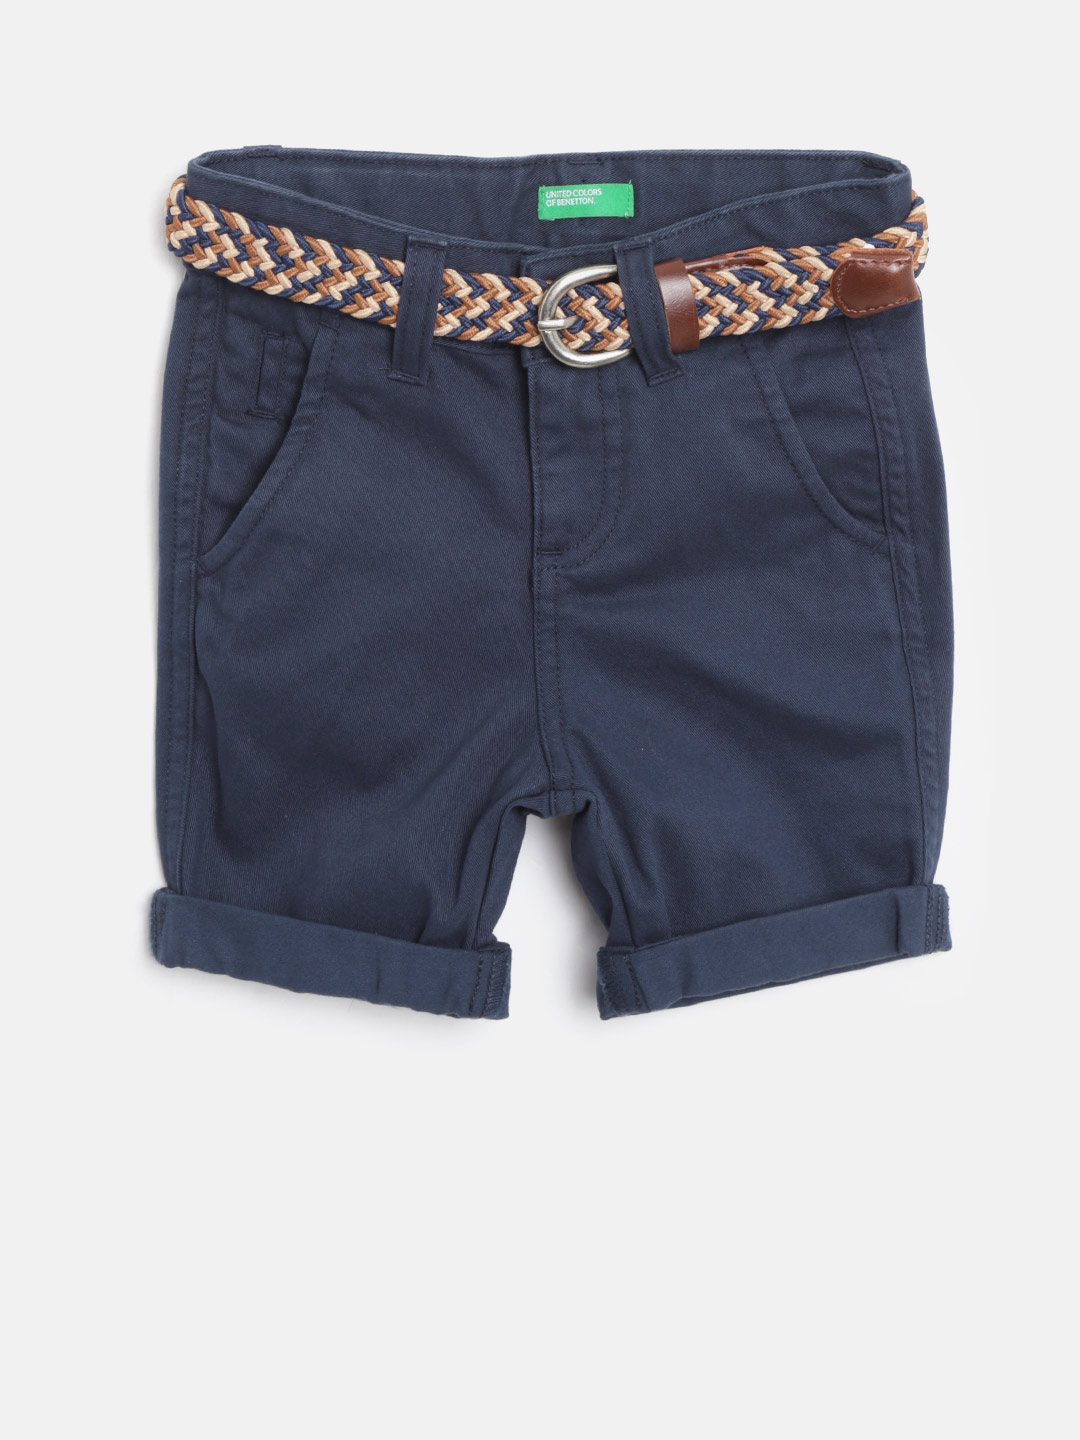 4952f29a746e Boys Shorts - Buy Shorts for Boys Online in India